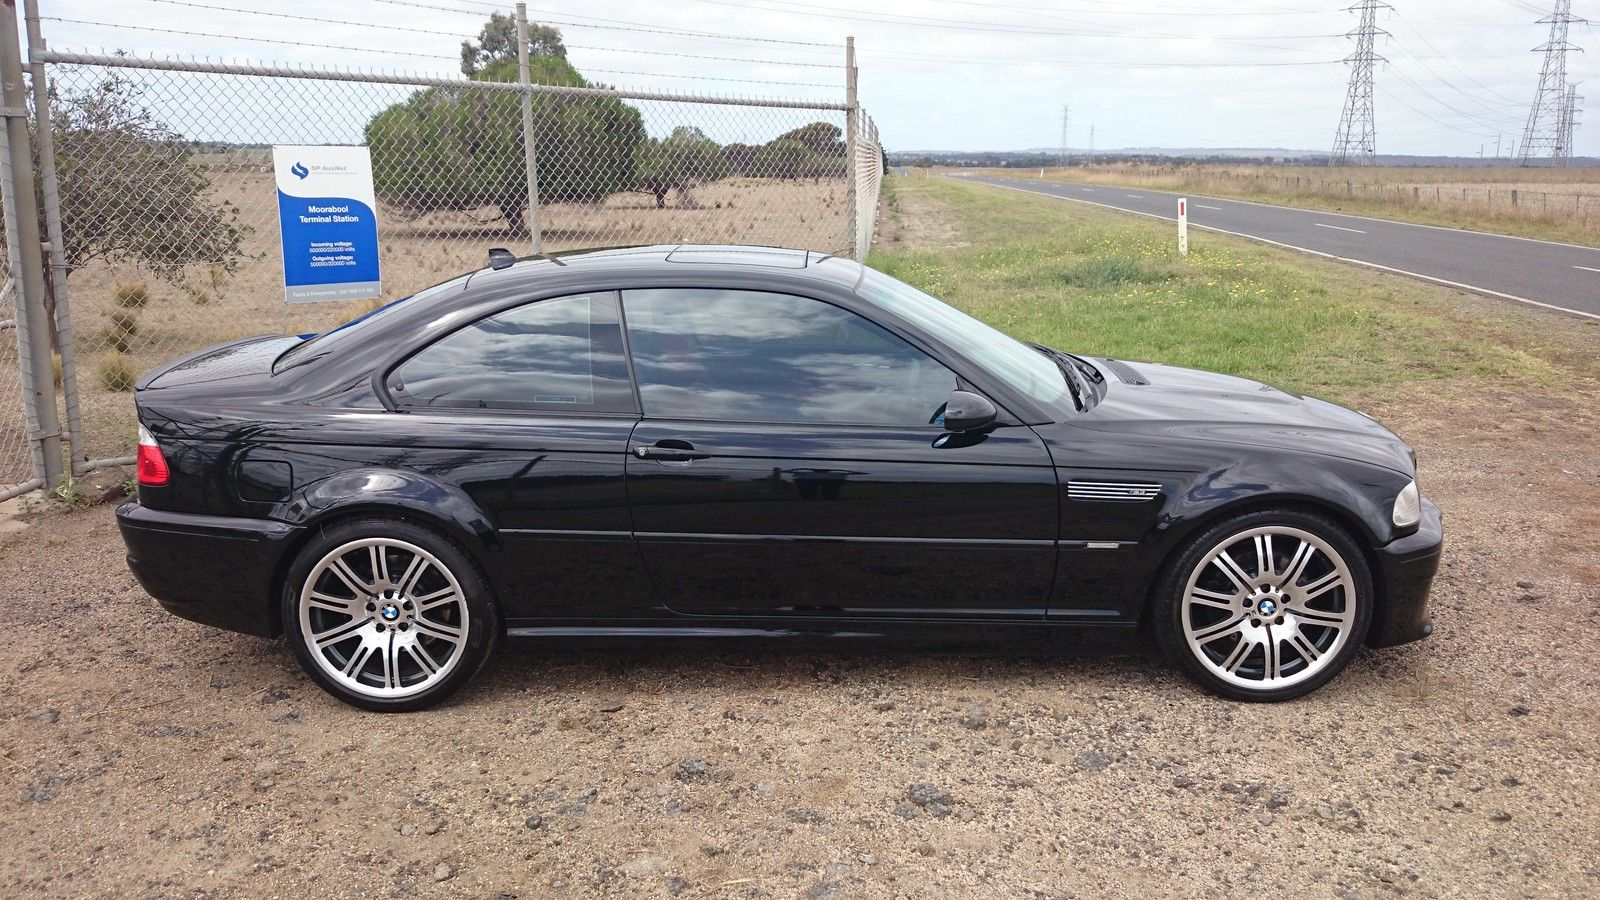 Bmw Rims Style >> 2002 BMW M3 E46 | Car Sales NSW: Central Coast #2668152